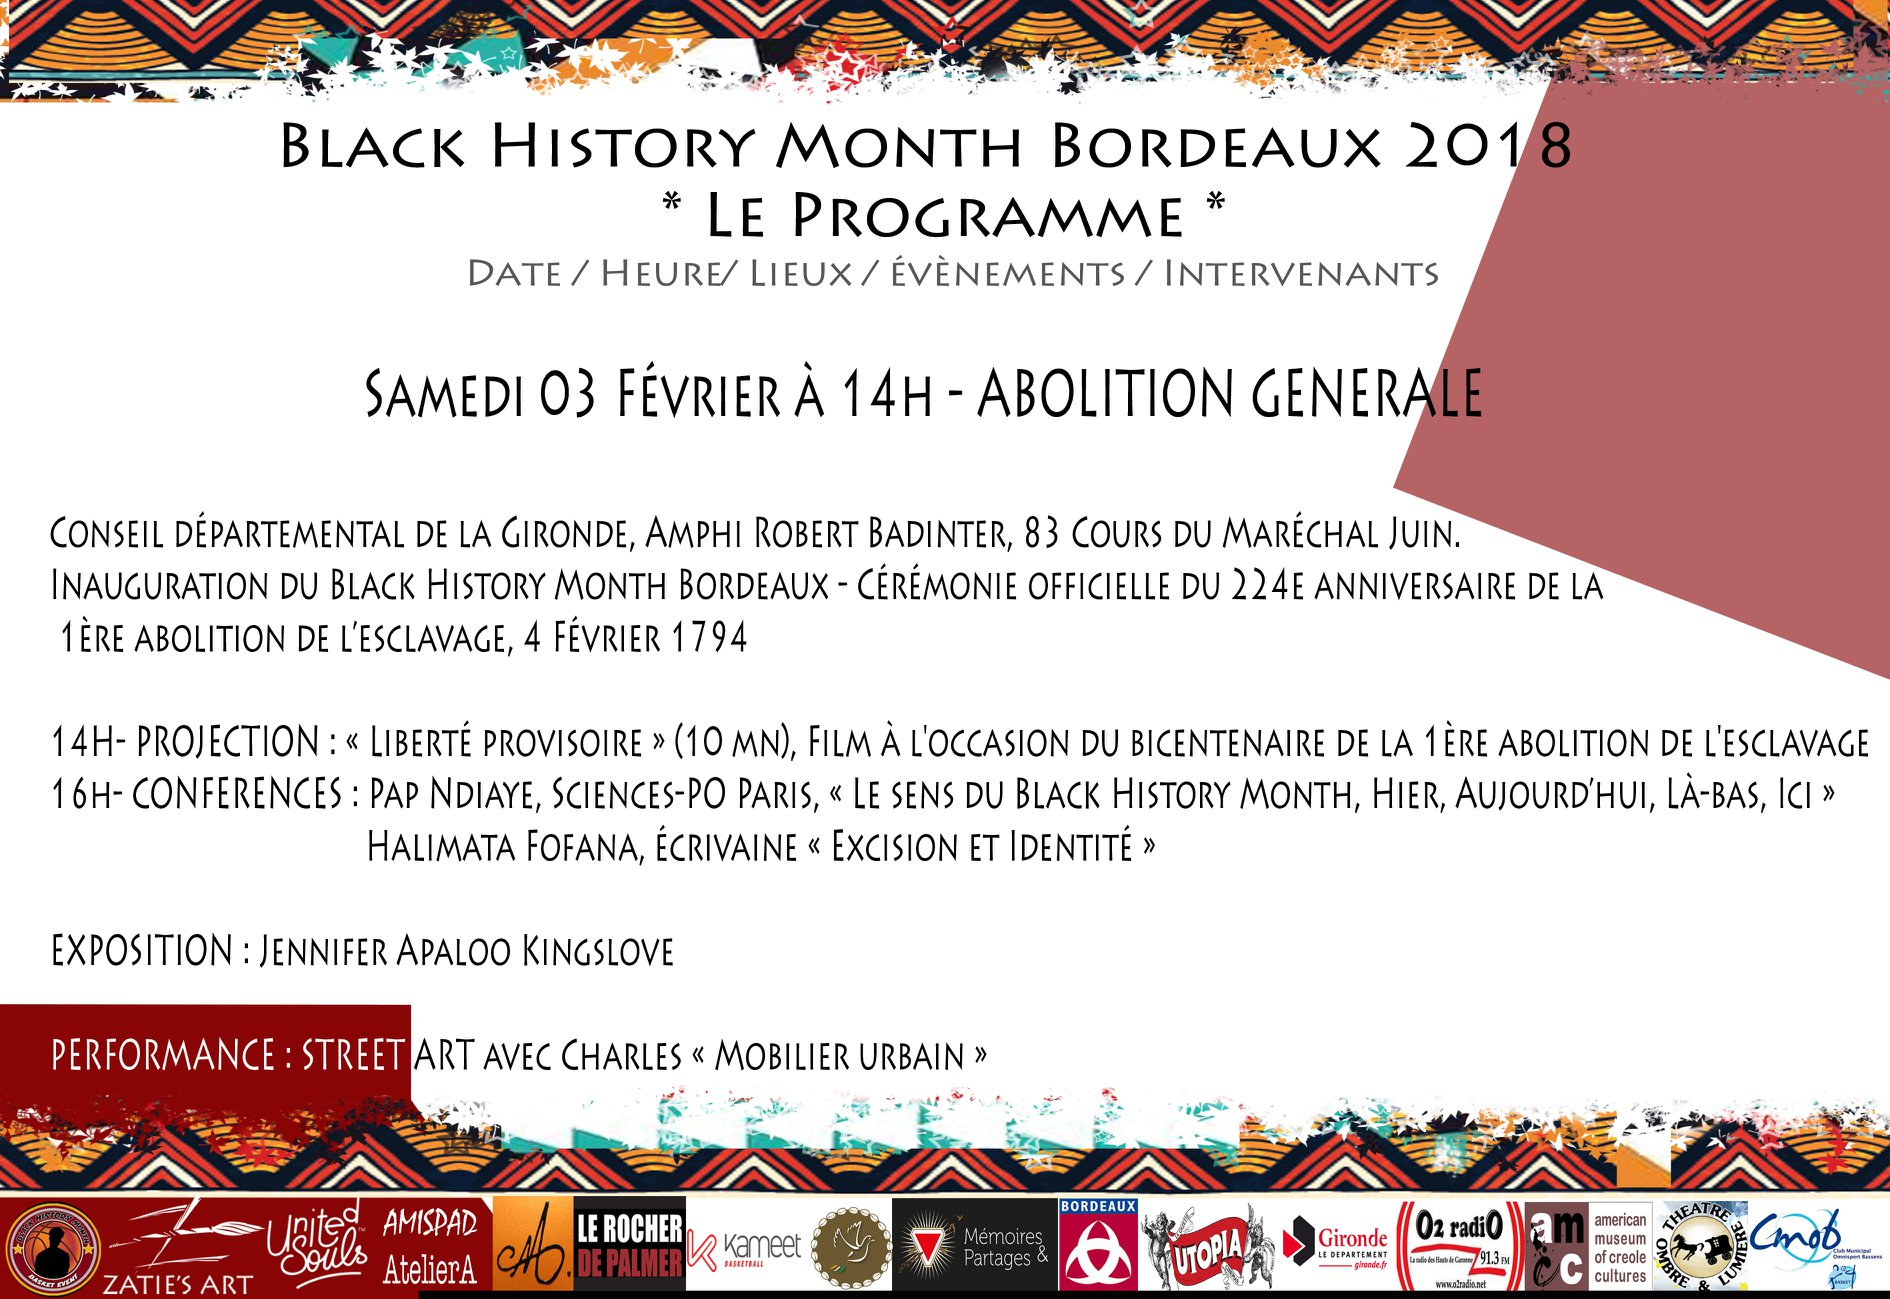 February 3 events - Black History Month Bordeaux